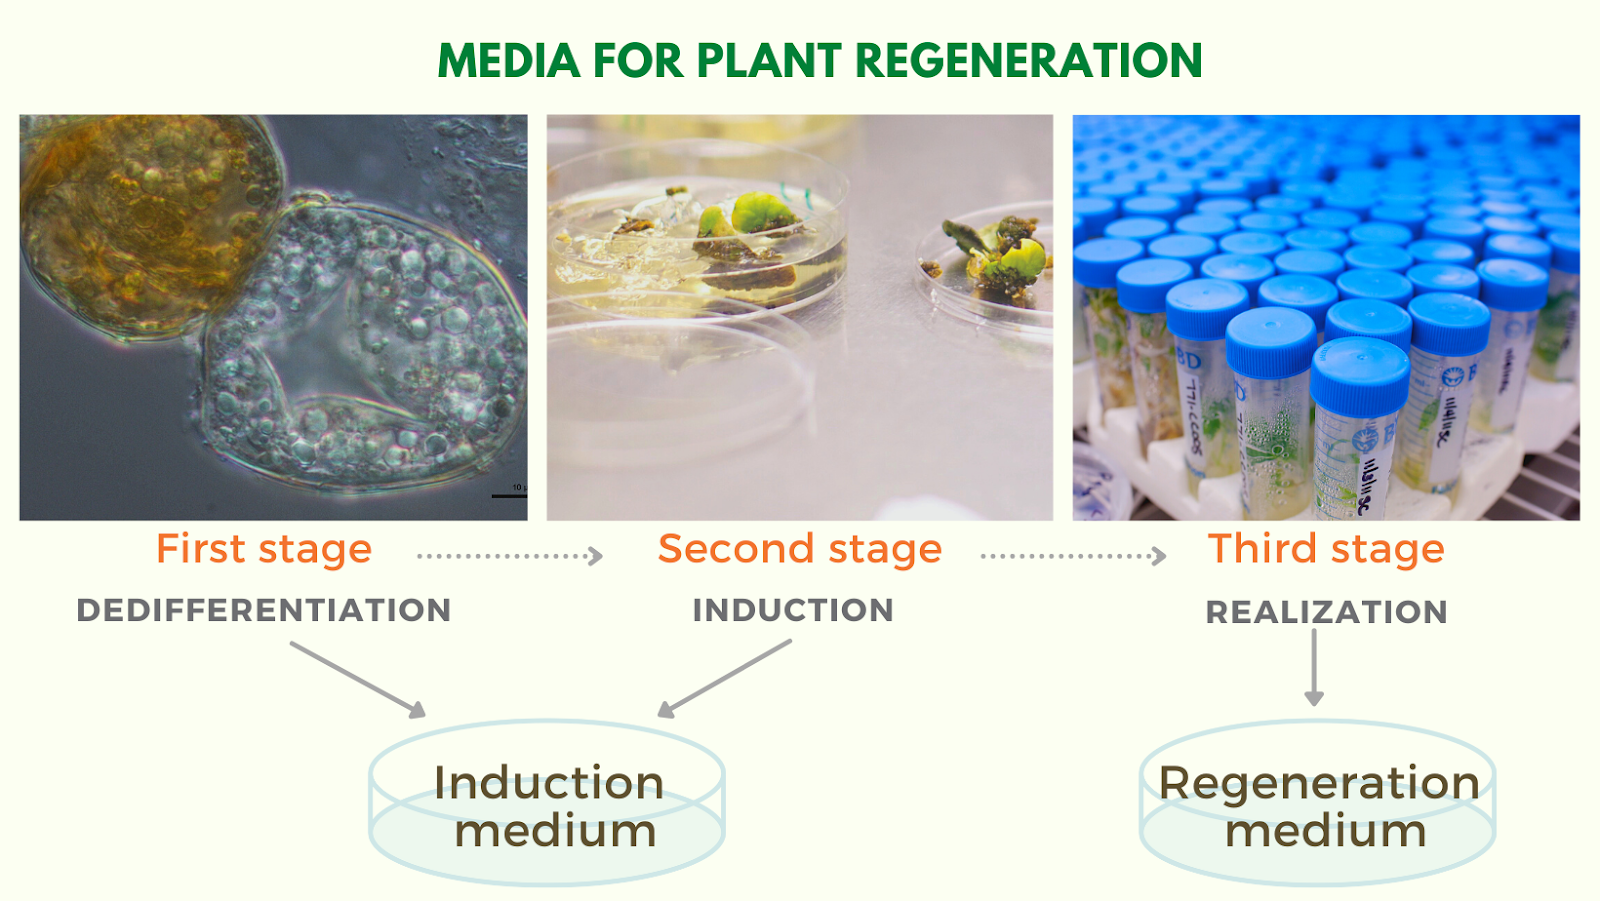 The three stages of plant regeneration chart